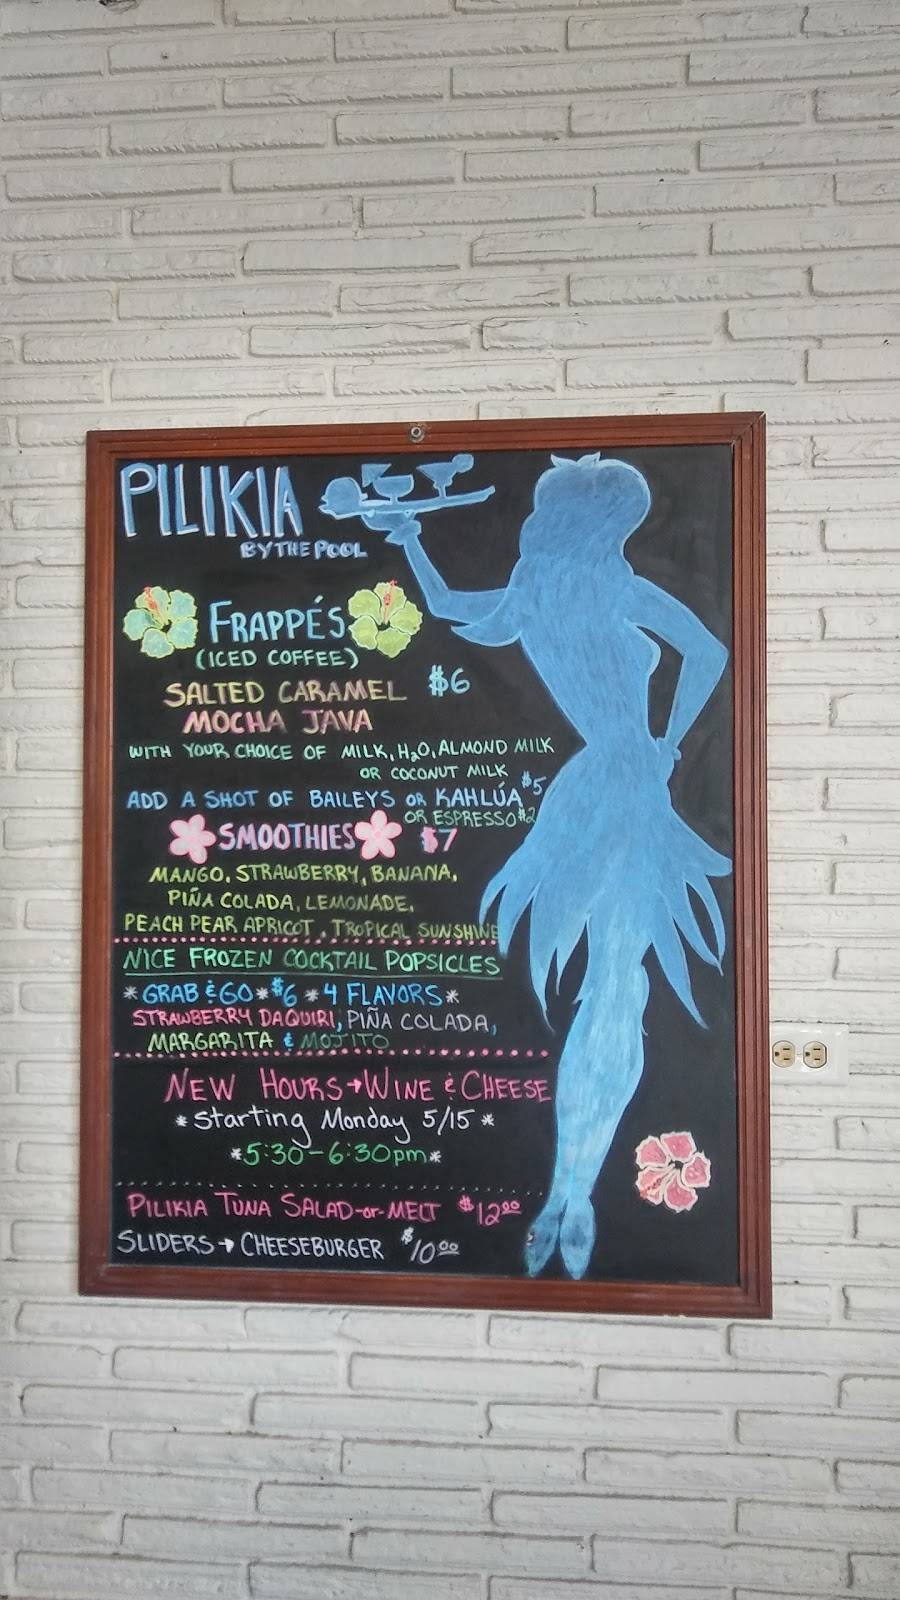 Pilikia By the Pool   restaurant   1751 Collins Ave, Miami Beach, FL 33139, USA   3053581411 OR +1 305-358-1411